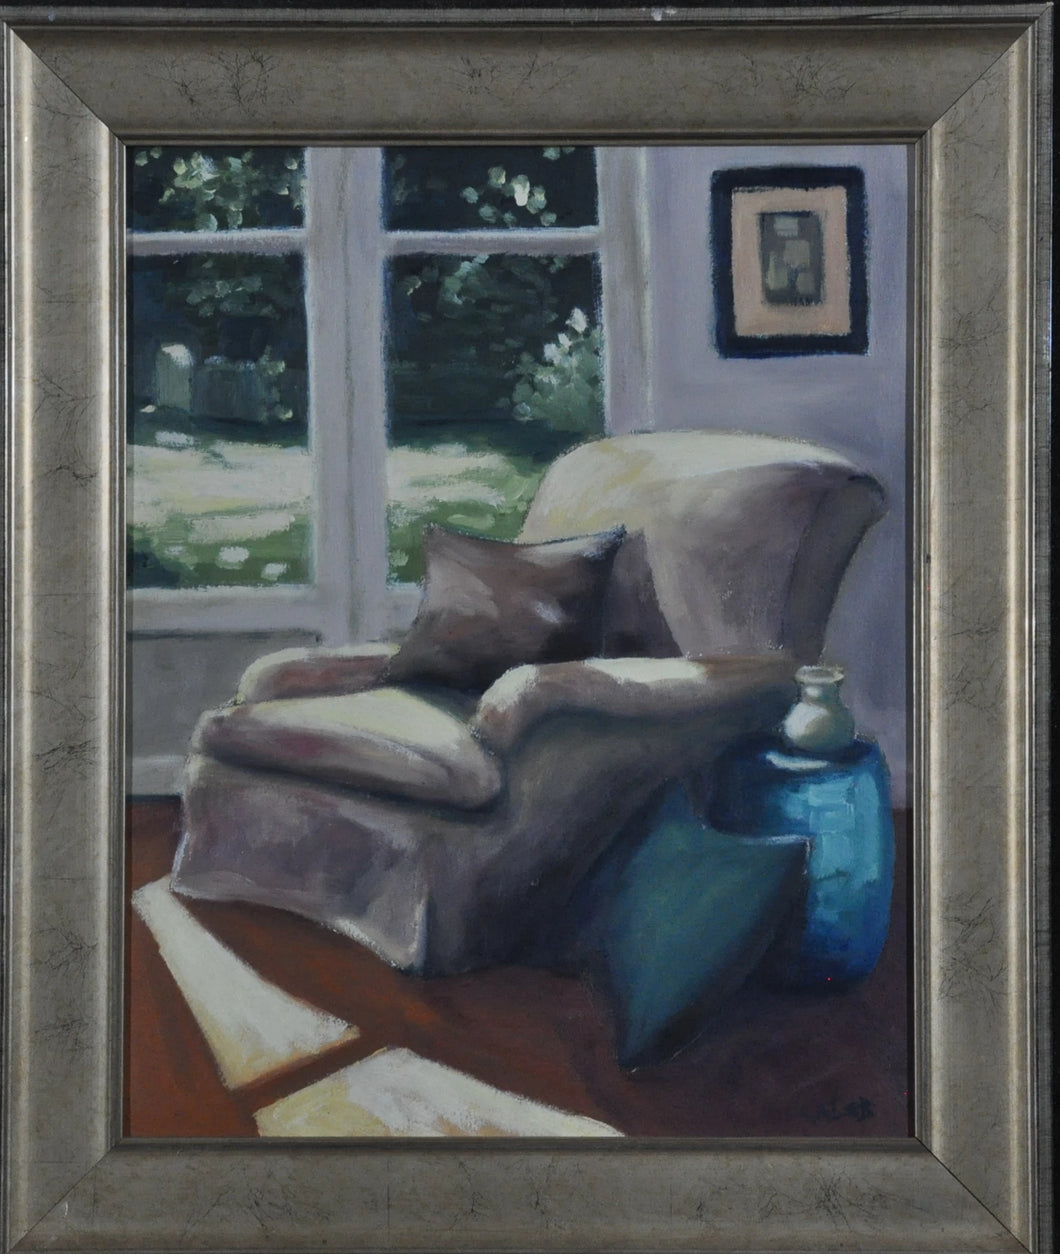 painting of Easy Chair with pillows and sun through a window view to gardens